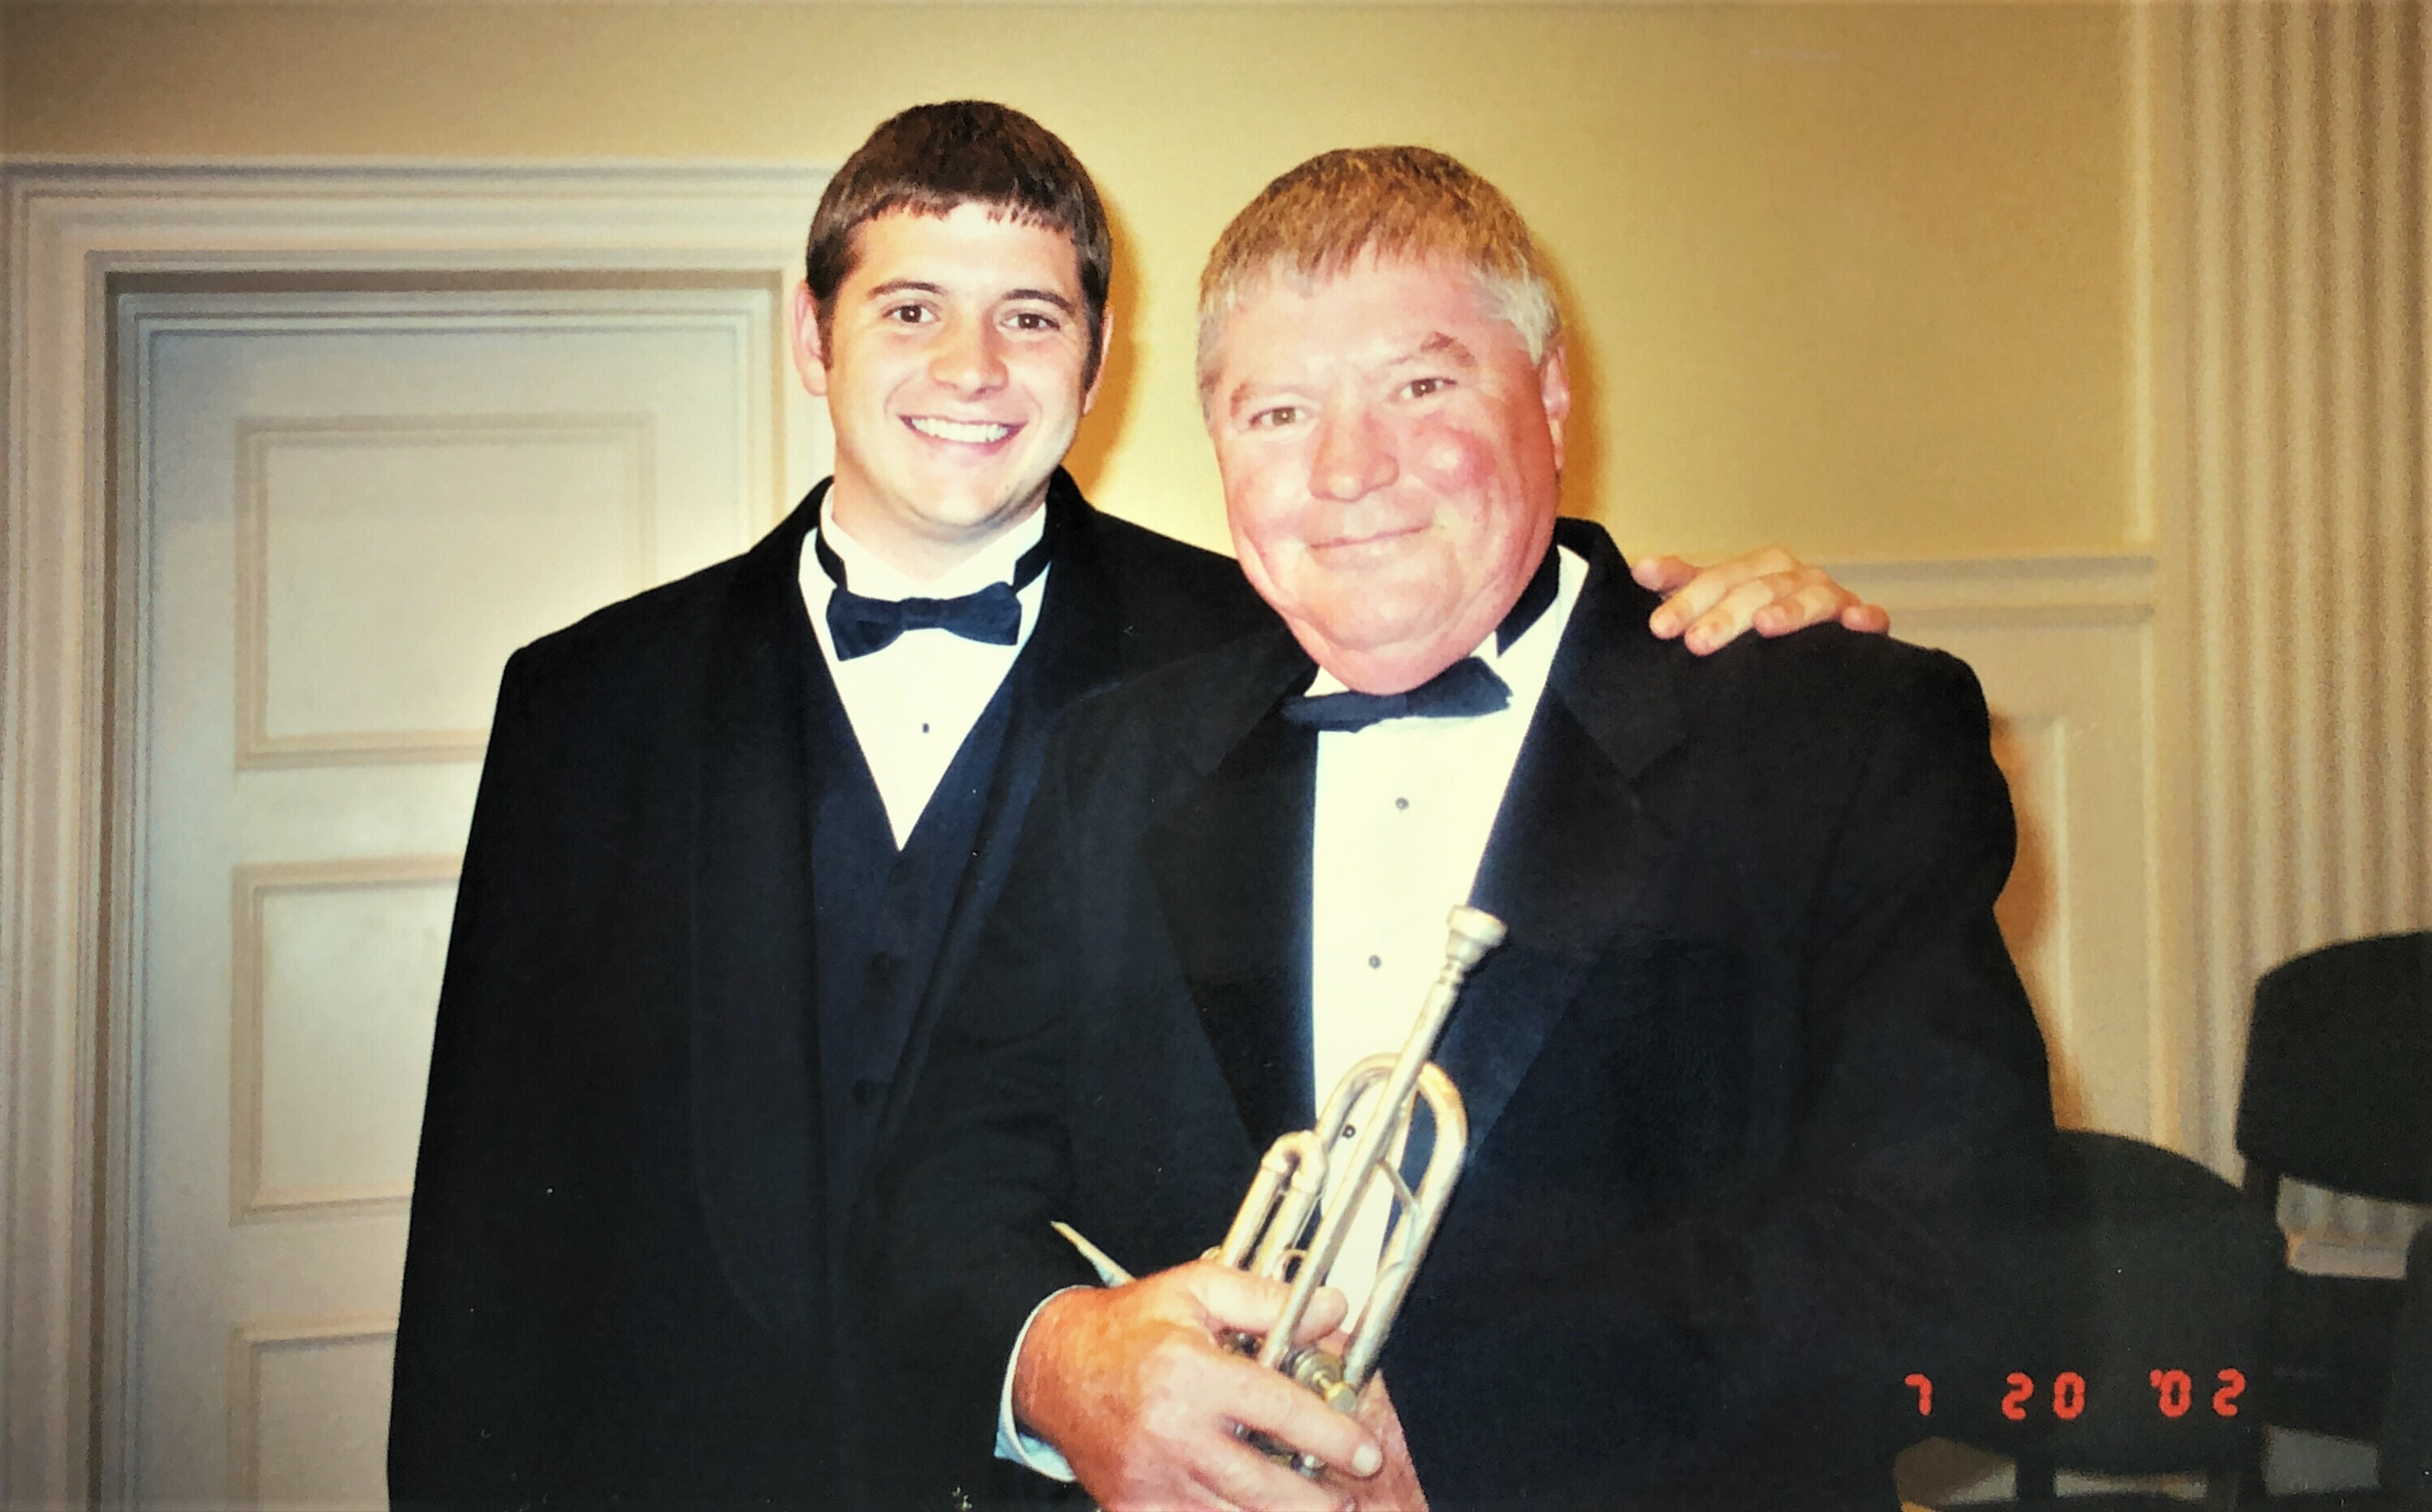 David with his son Davy, also a gifted trumpet player.